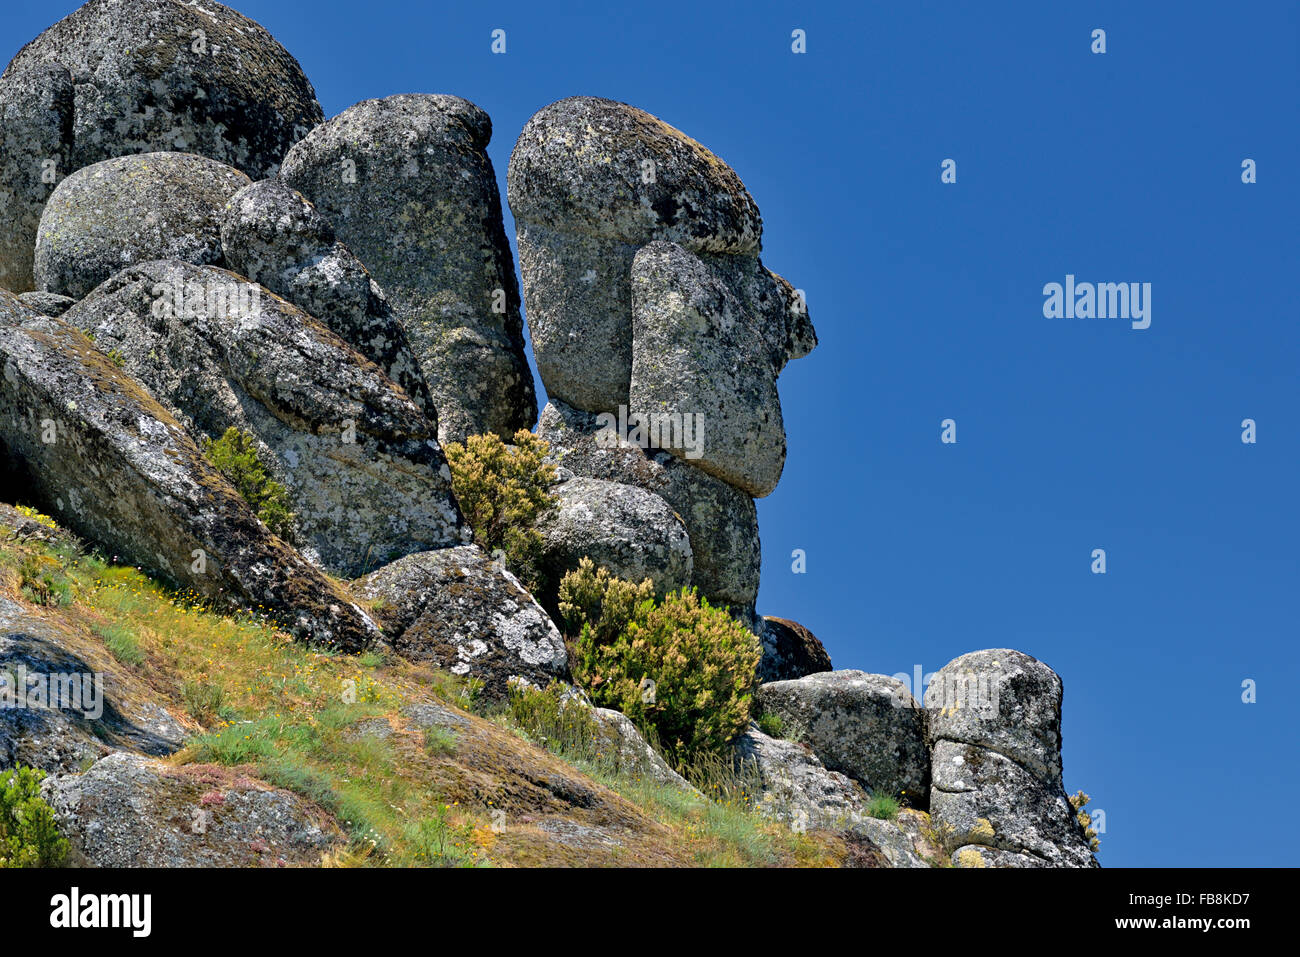 Portugal: Granitic stone formation 'Cabeça do Velho' ((Head of the Old Man) in the mountain region - Stock Image